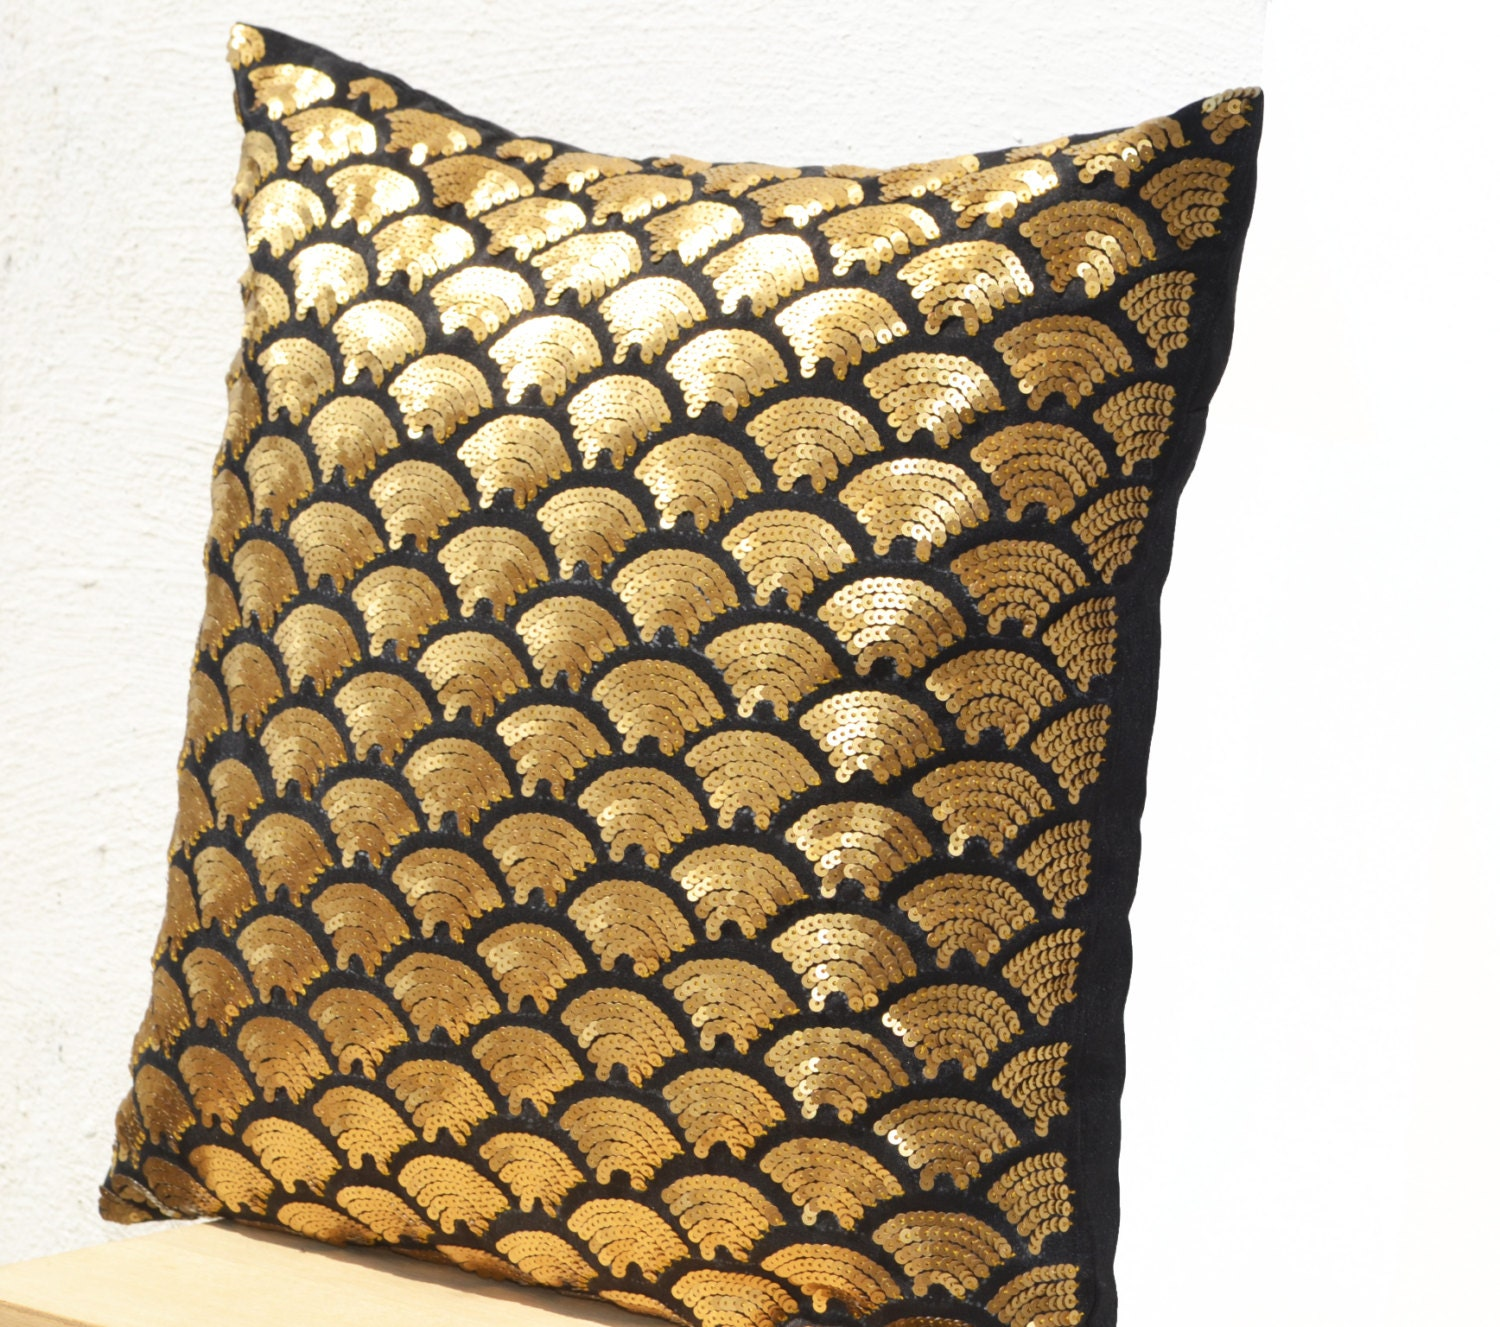 Decorative Pillows Black And Gold : Gold sequin pillows embroidered waves Black throw pillow